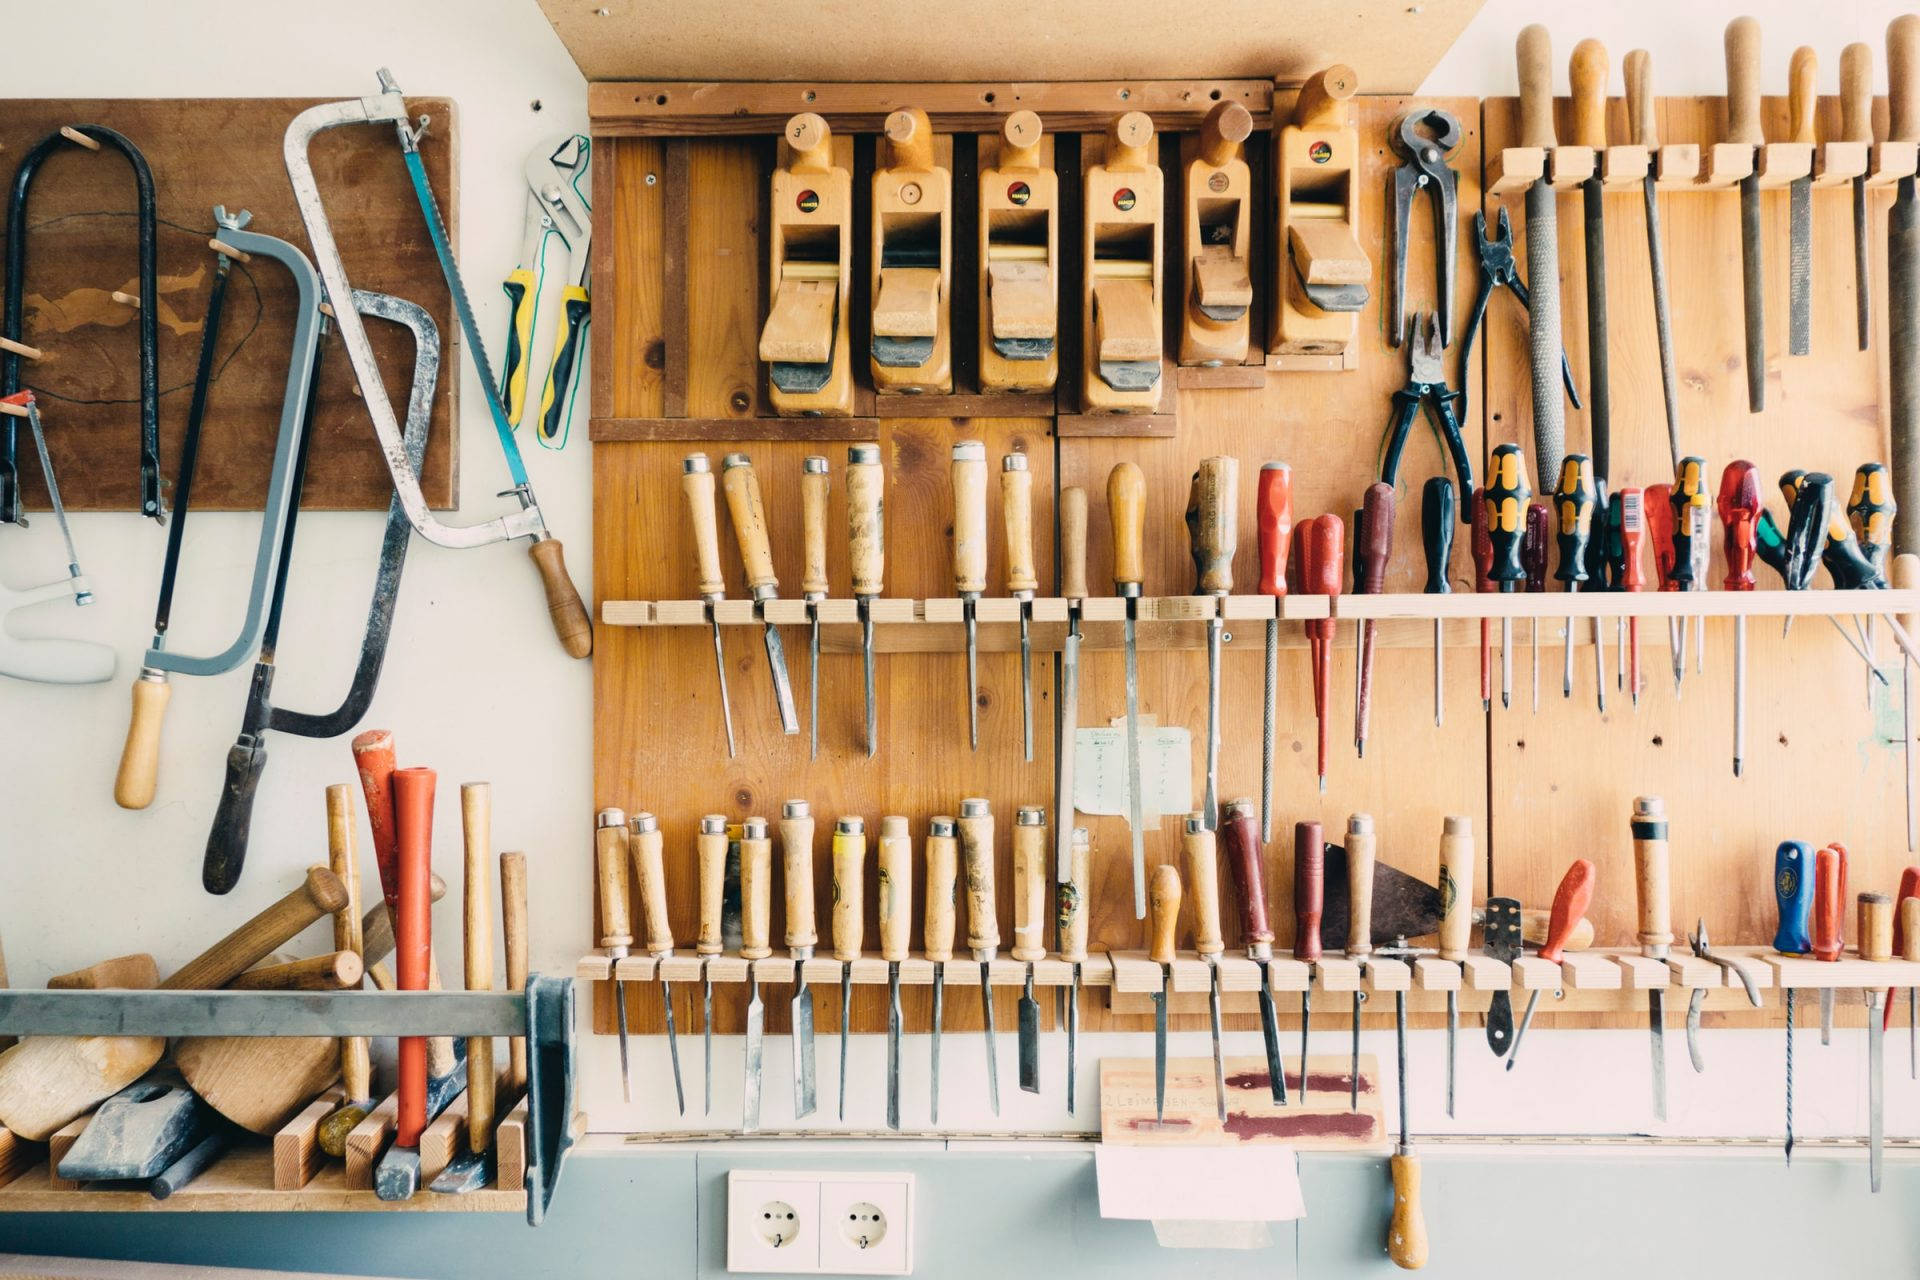 Hammer, Nail, and Overengineering: Become a better engineer with the toolbox mindset.